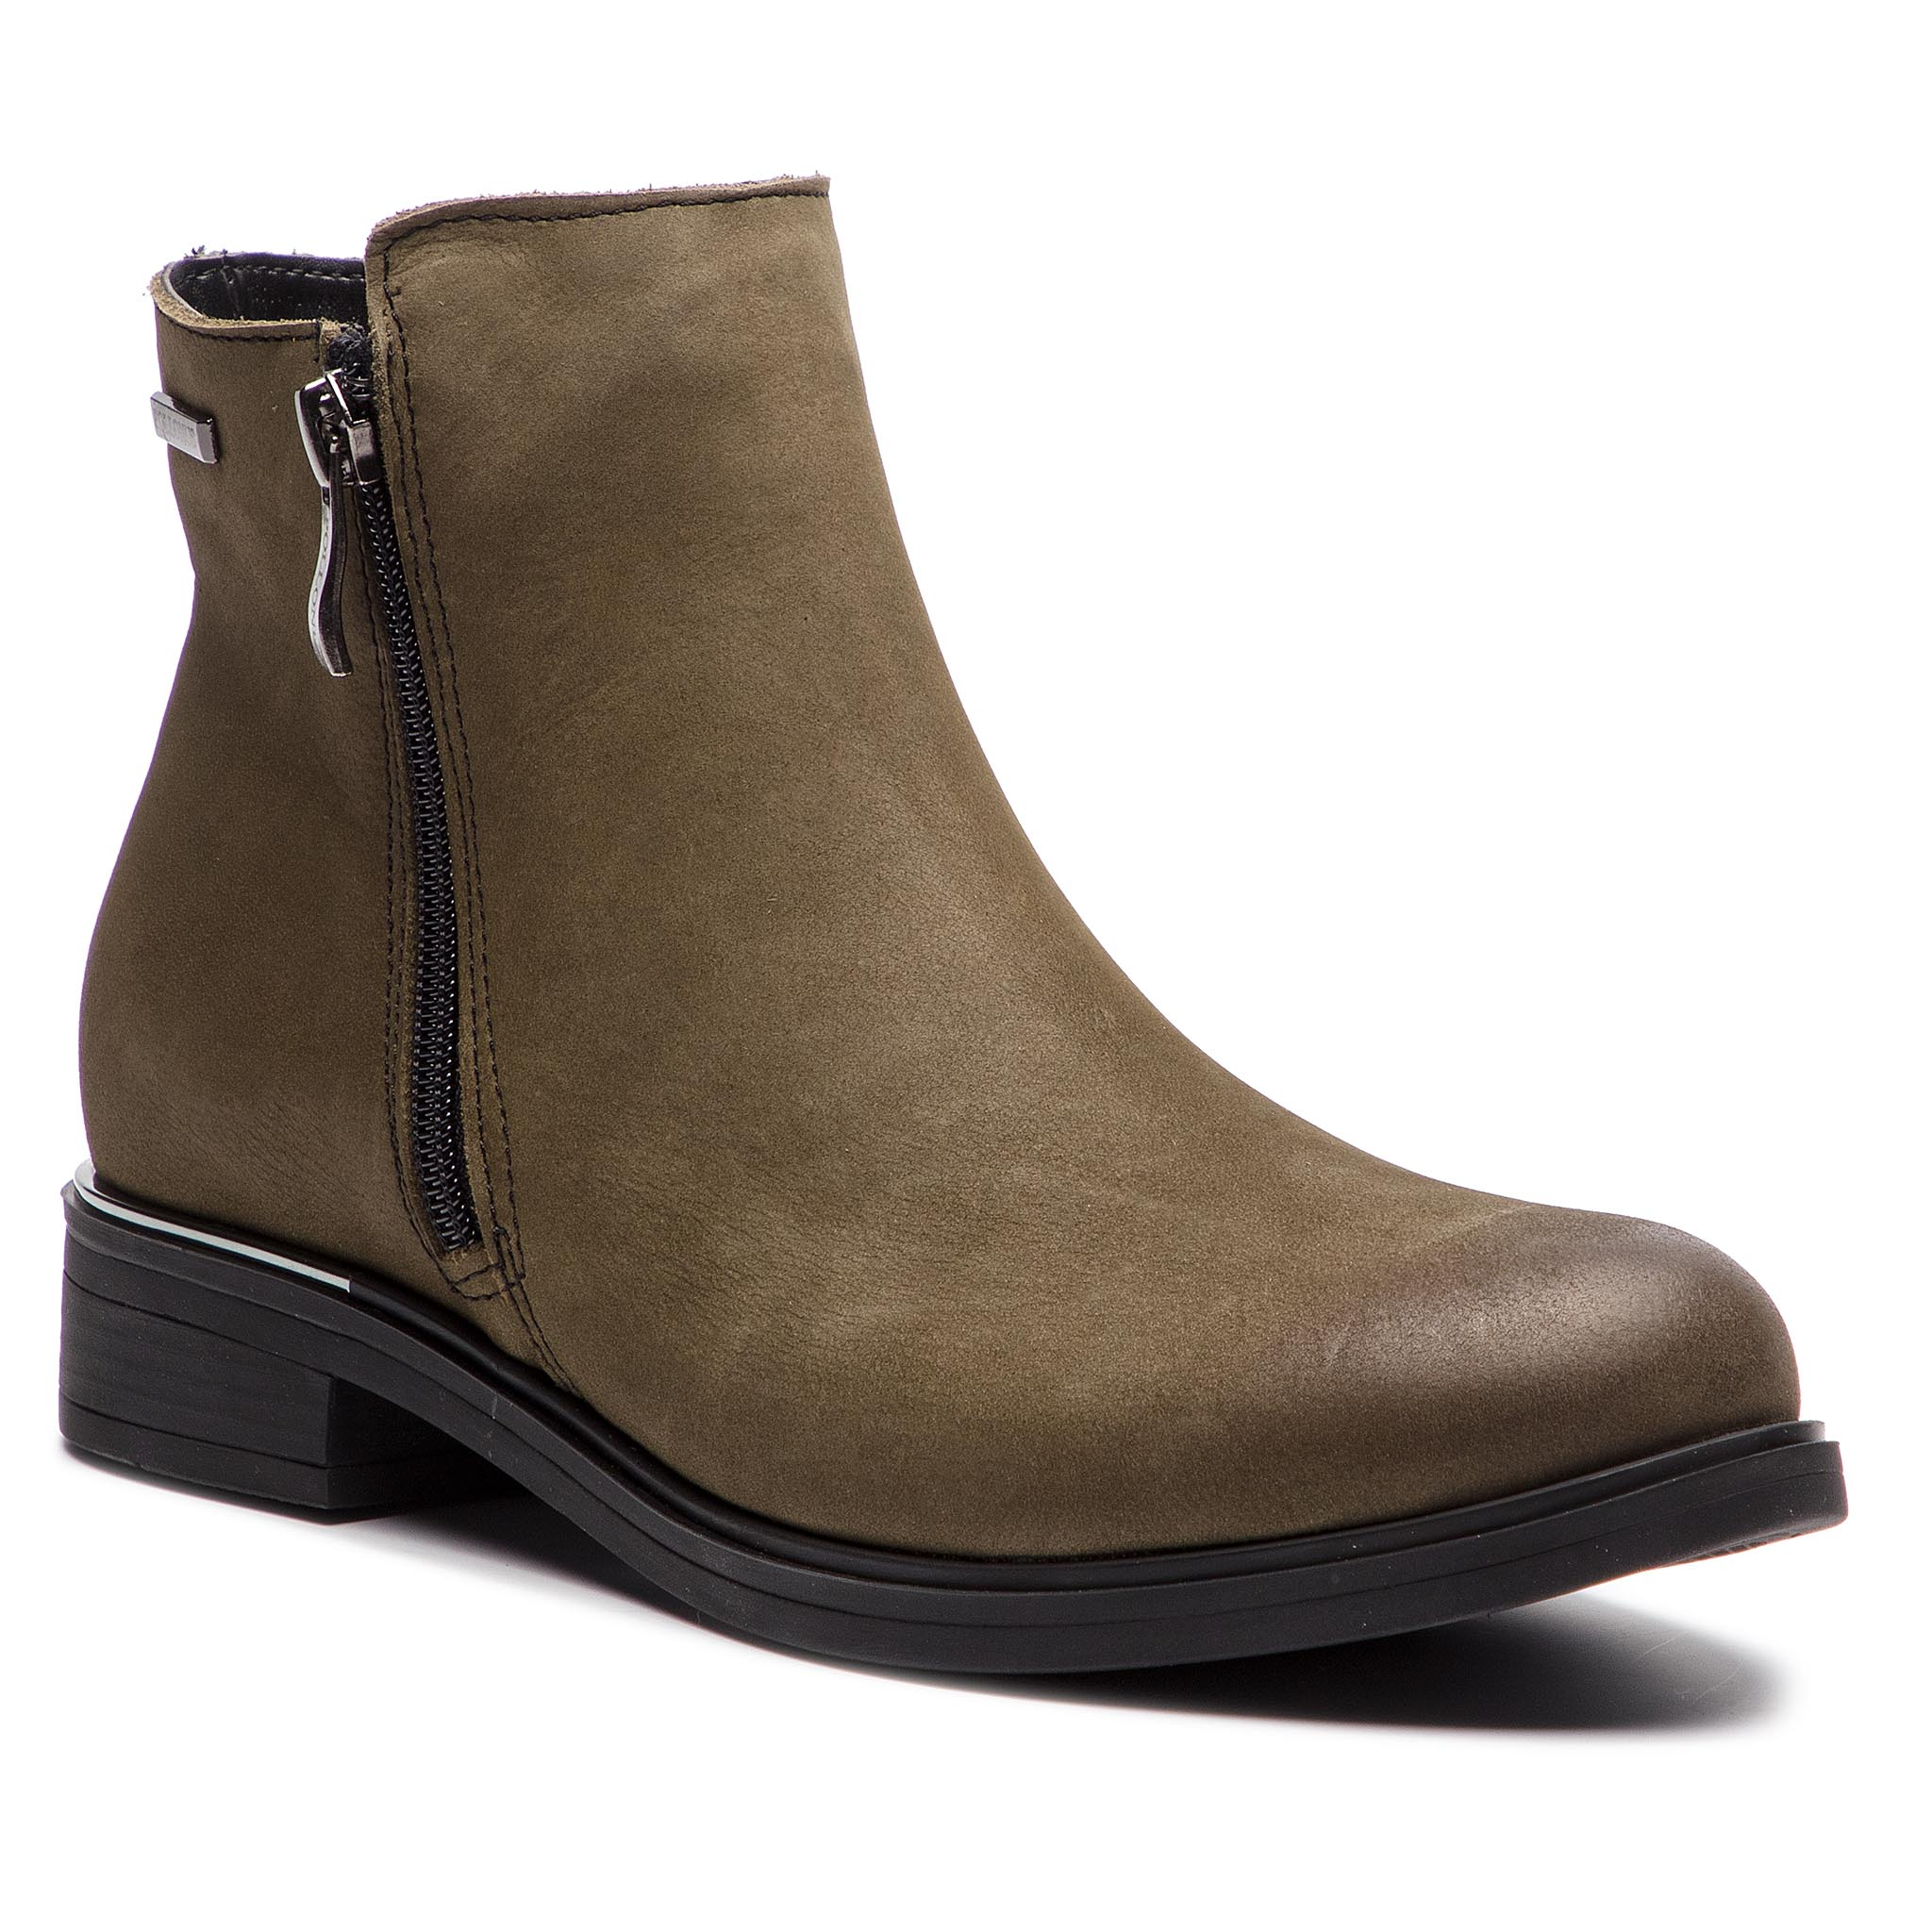 Bottines POLLONUS - 5-0875-017 Zielony Samuel